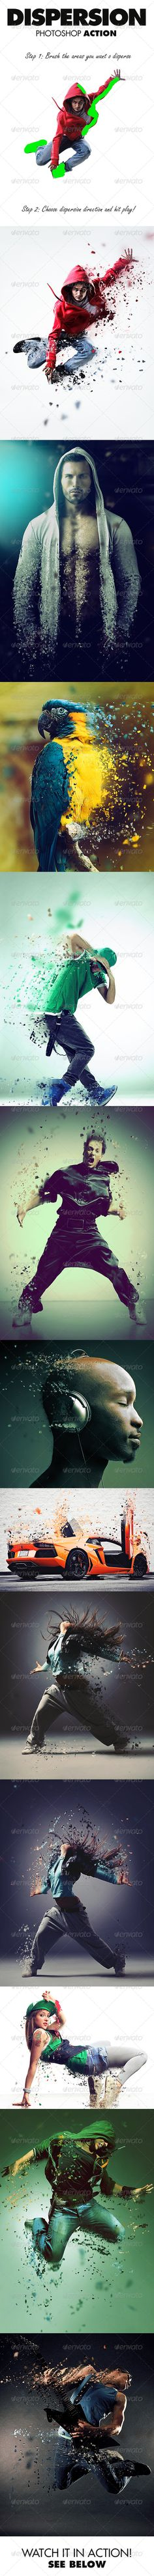 Dispersion Photoshop Action - Photo Effects Actions Photography Editing Digital Painting Tutorial Photoshop Effekte, Lightroom, Effects Photoshop, Photoshop Illustrator, Photoshop Elements, Photoshop Tutorial, Photoshop Projects, Photoshop Photography, Photography Tutorials